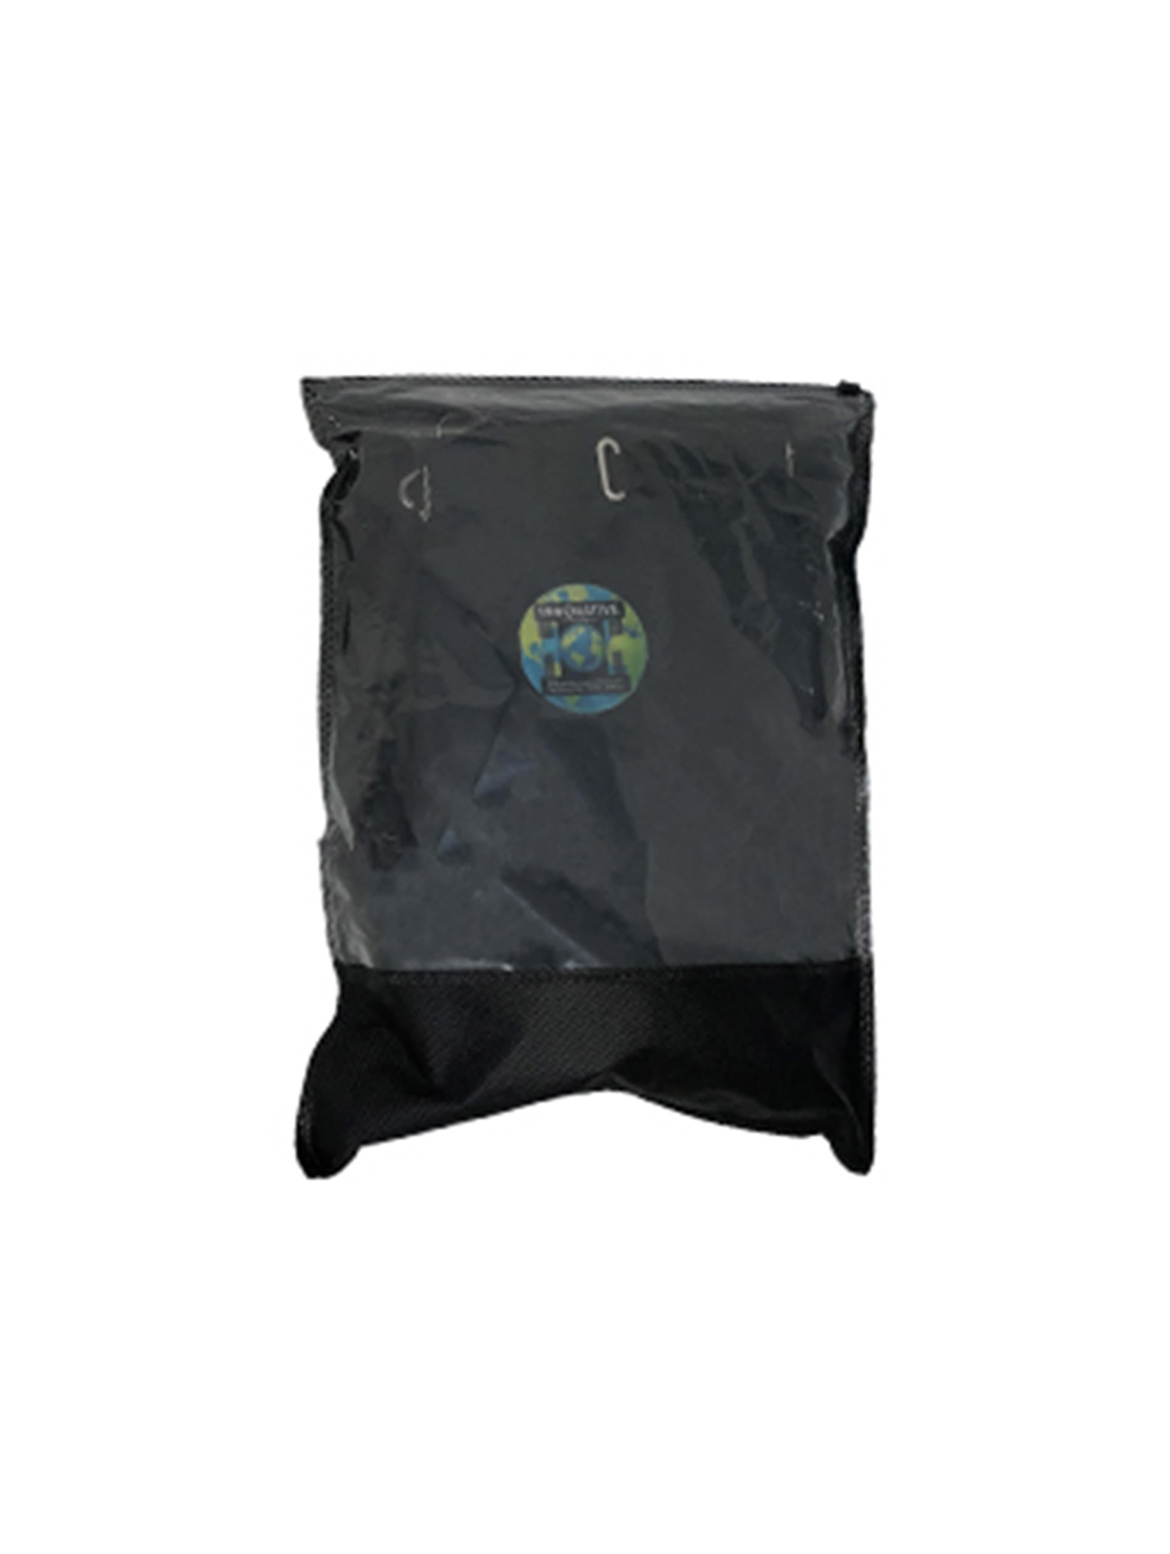 Picture of BLACK  Backpack blower cover, Expandable design.